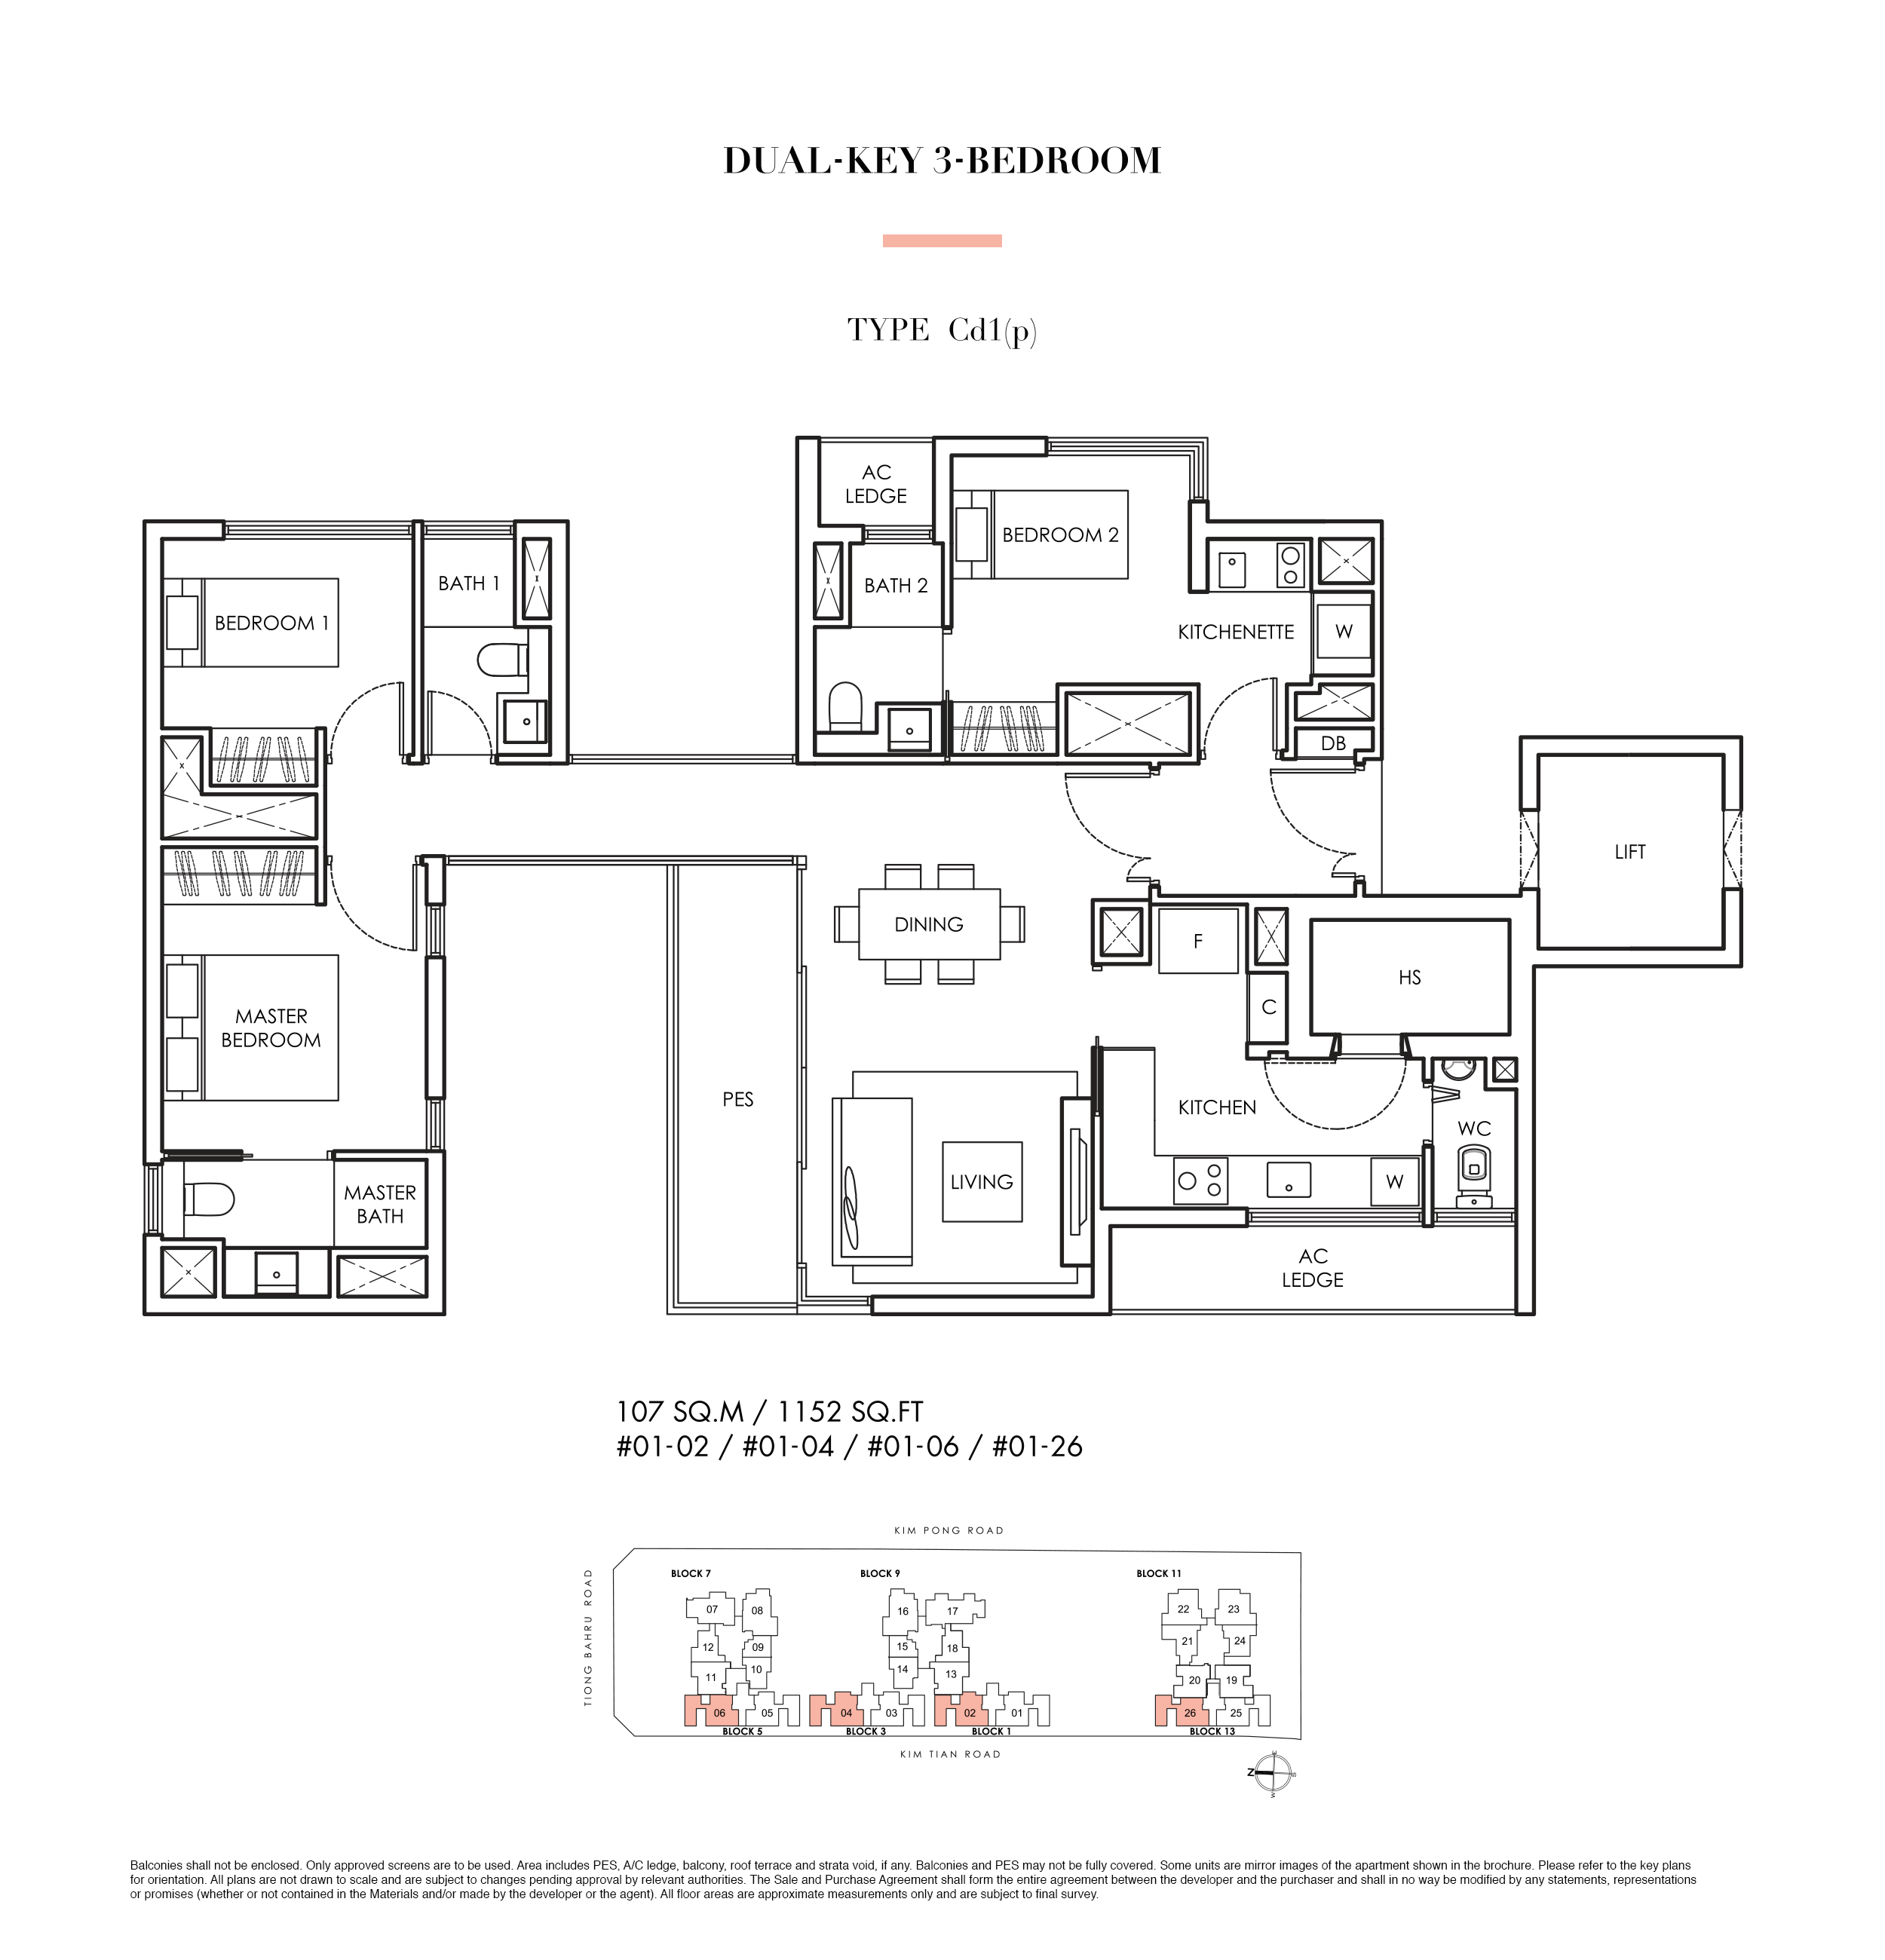 Guard house floor plan 28 images 28 guard house floor for Guard house design layout